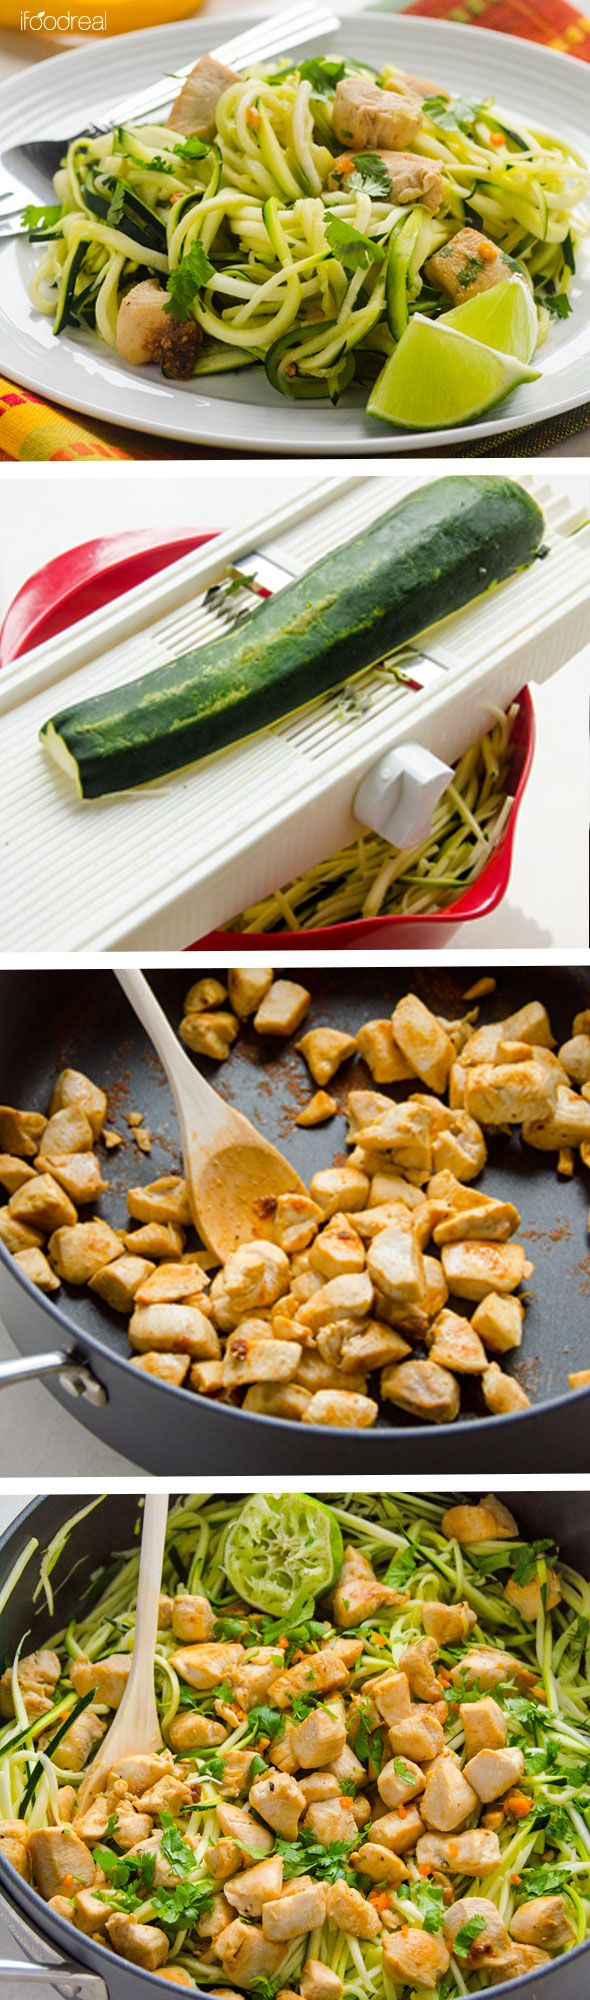 Zucchini Noodles with Cilantro Lime Chicken is delicious 20 minute healthy and gluten free dinner idea. If you dont have a spiralizer just chop the zucchini.  ifoodreal.com